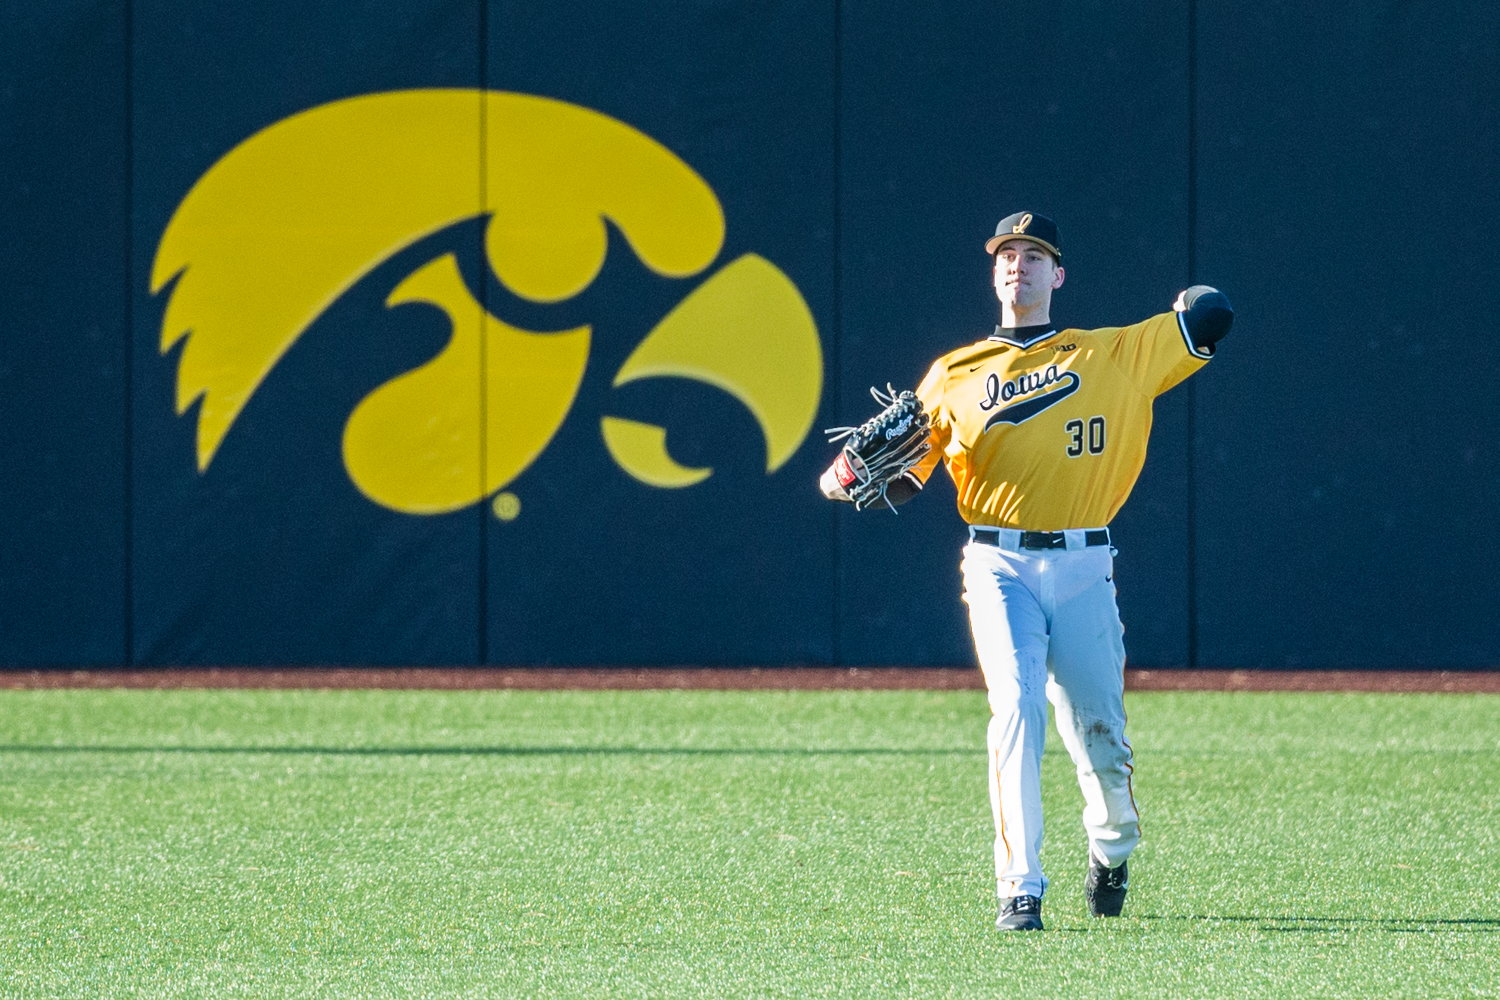 Iowa+outfielder+Connor+McCaffery+returns+the+ball+during+the+second+game+of+a+baseball+doubleheader+between+Iowa+and+Cal-State+Northridge+at+Duane+Banks+Field+on+Sunday%2C+March+17%2C+2019.+The+Hawkeyes+took+the+series+by+defeating+the+Matadors%2C+3-1.